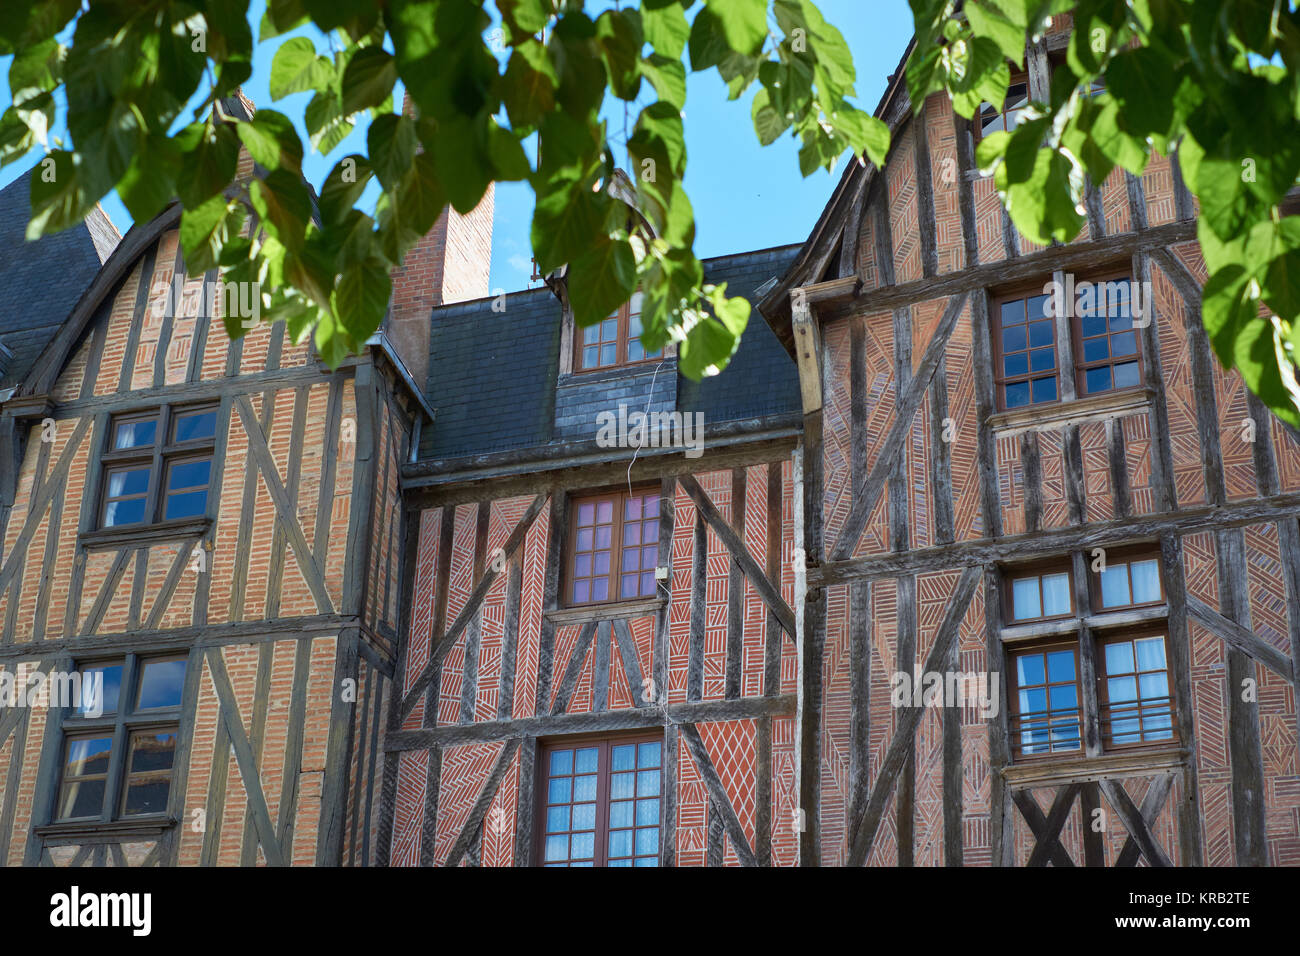 Wooden timbered buildings in the medieval city of Tours in the Loire Valley France - Stock Image